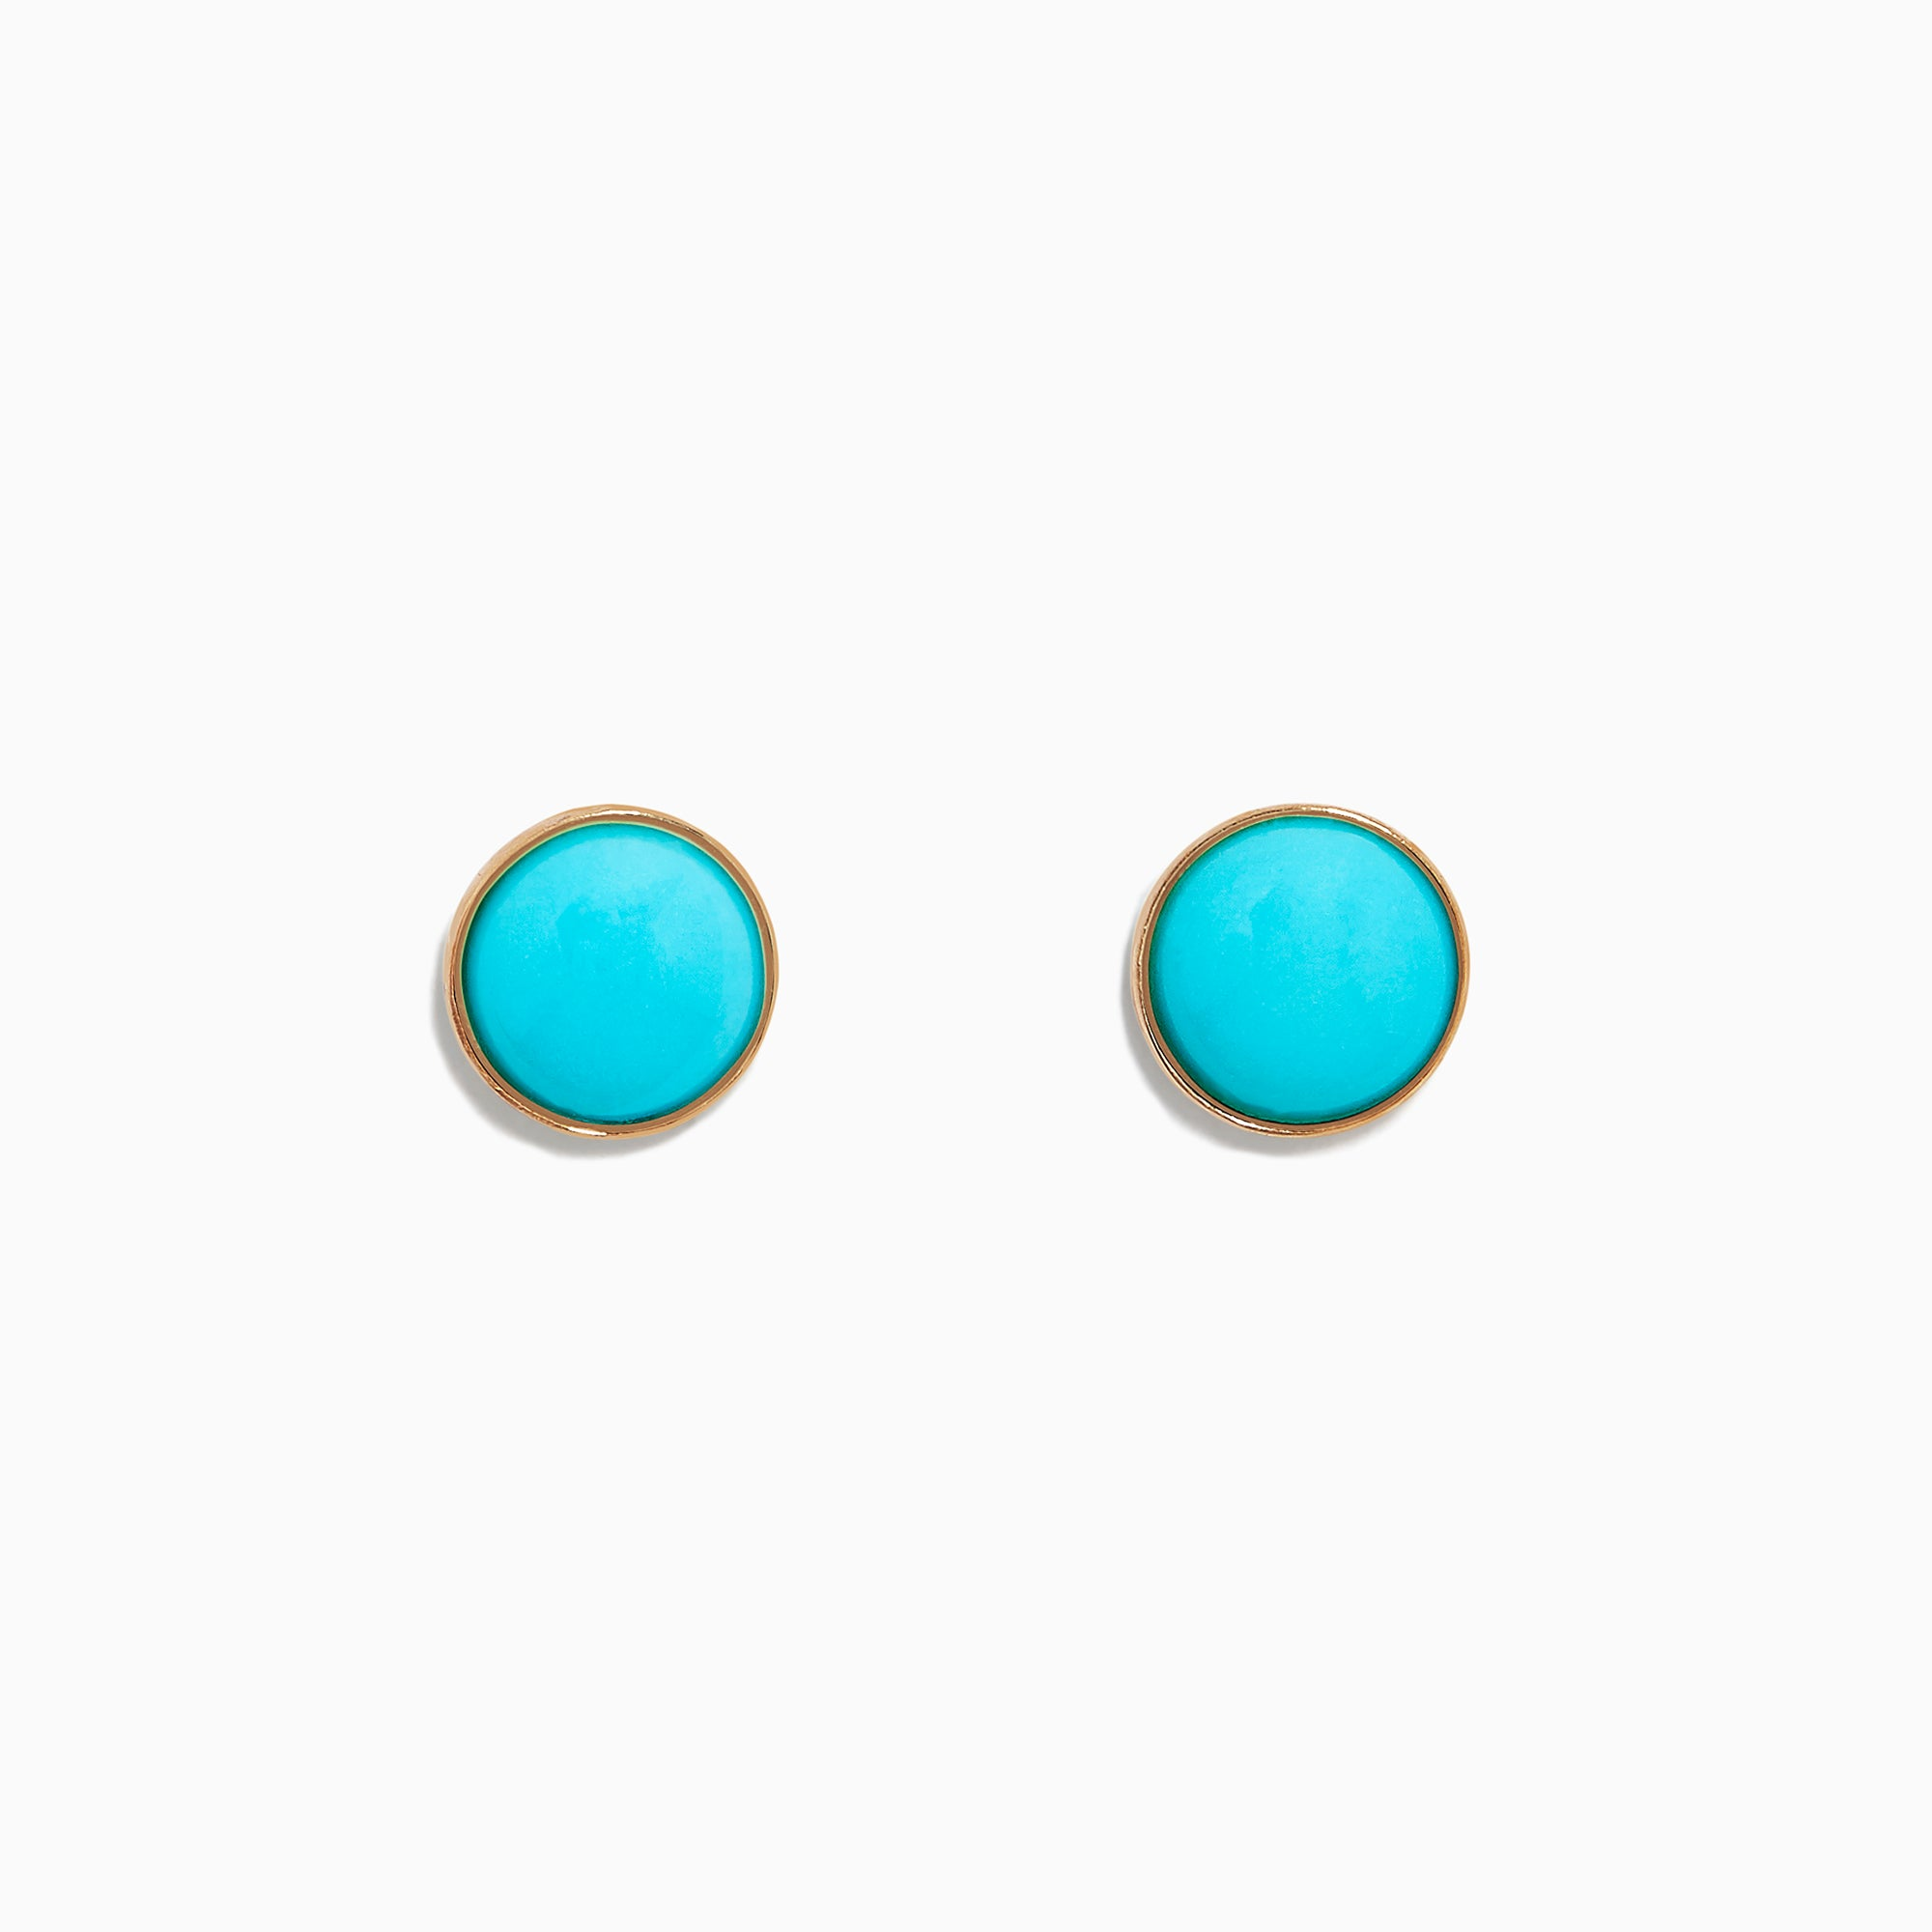 Effy 14K Yellow Gold Turquoise Stud Earrings, 1.10 TCW